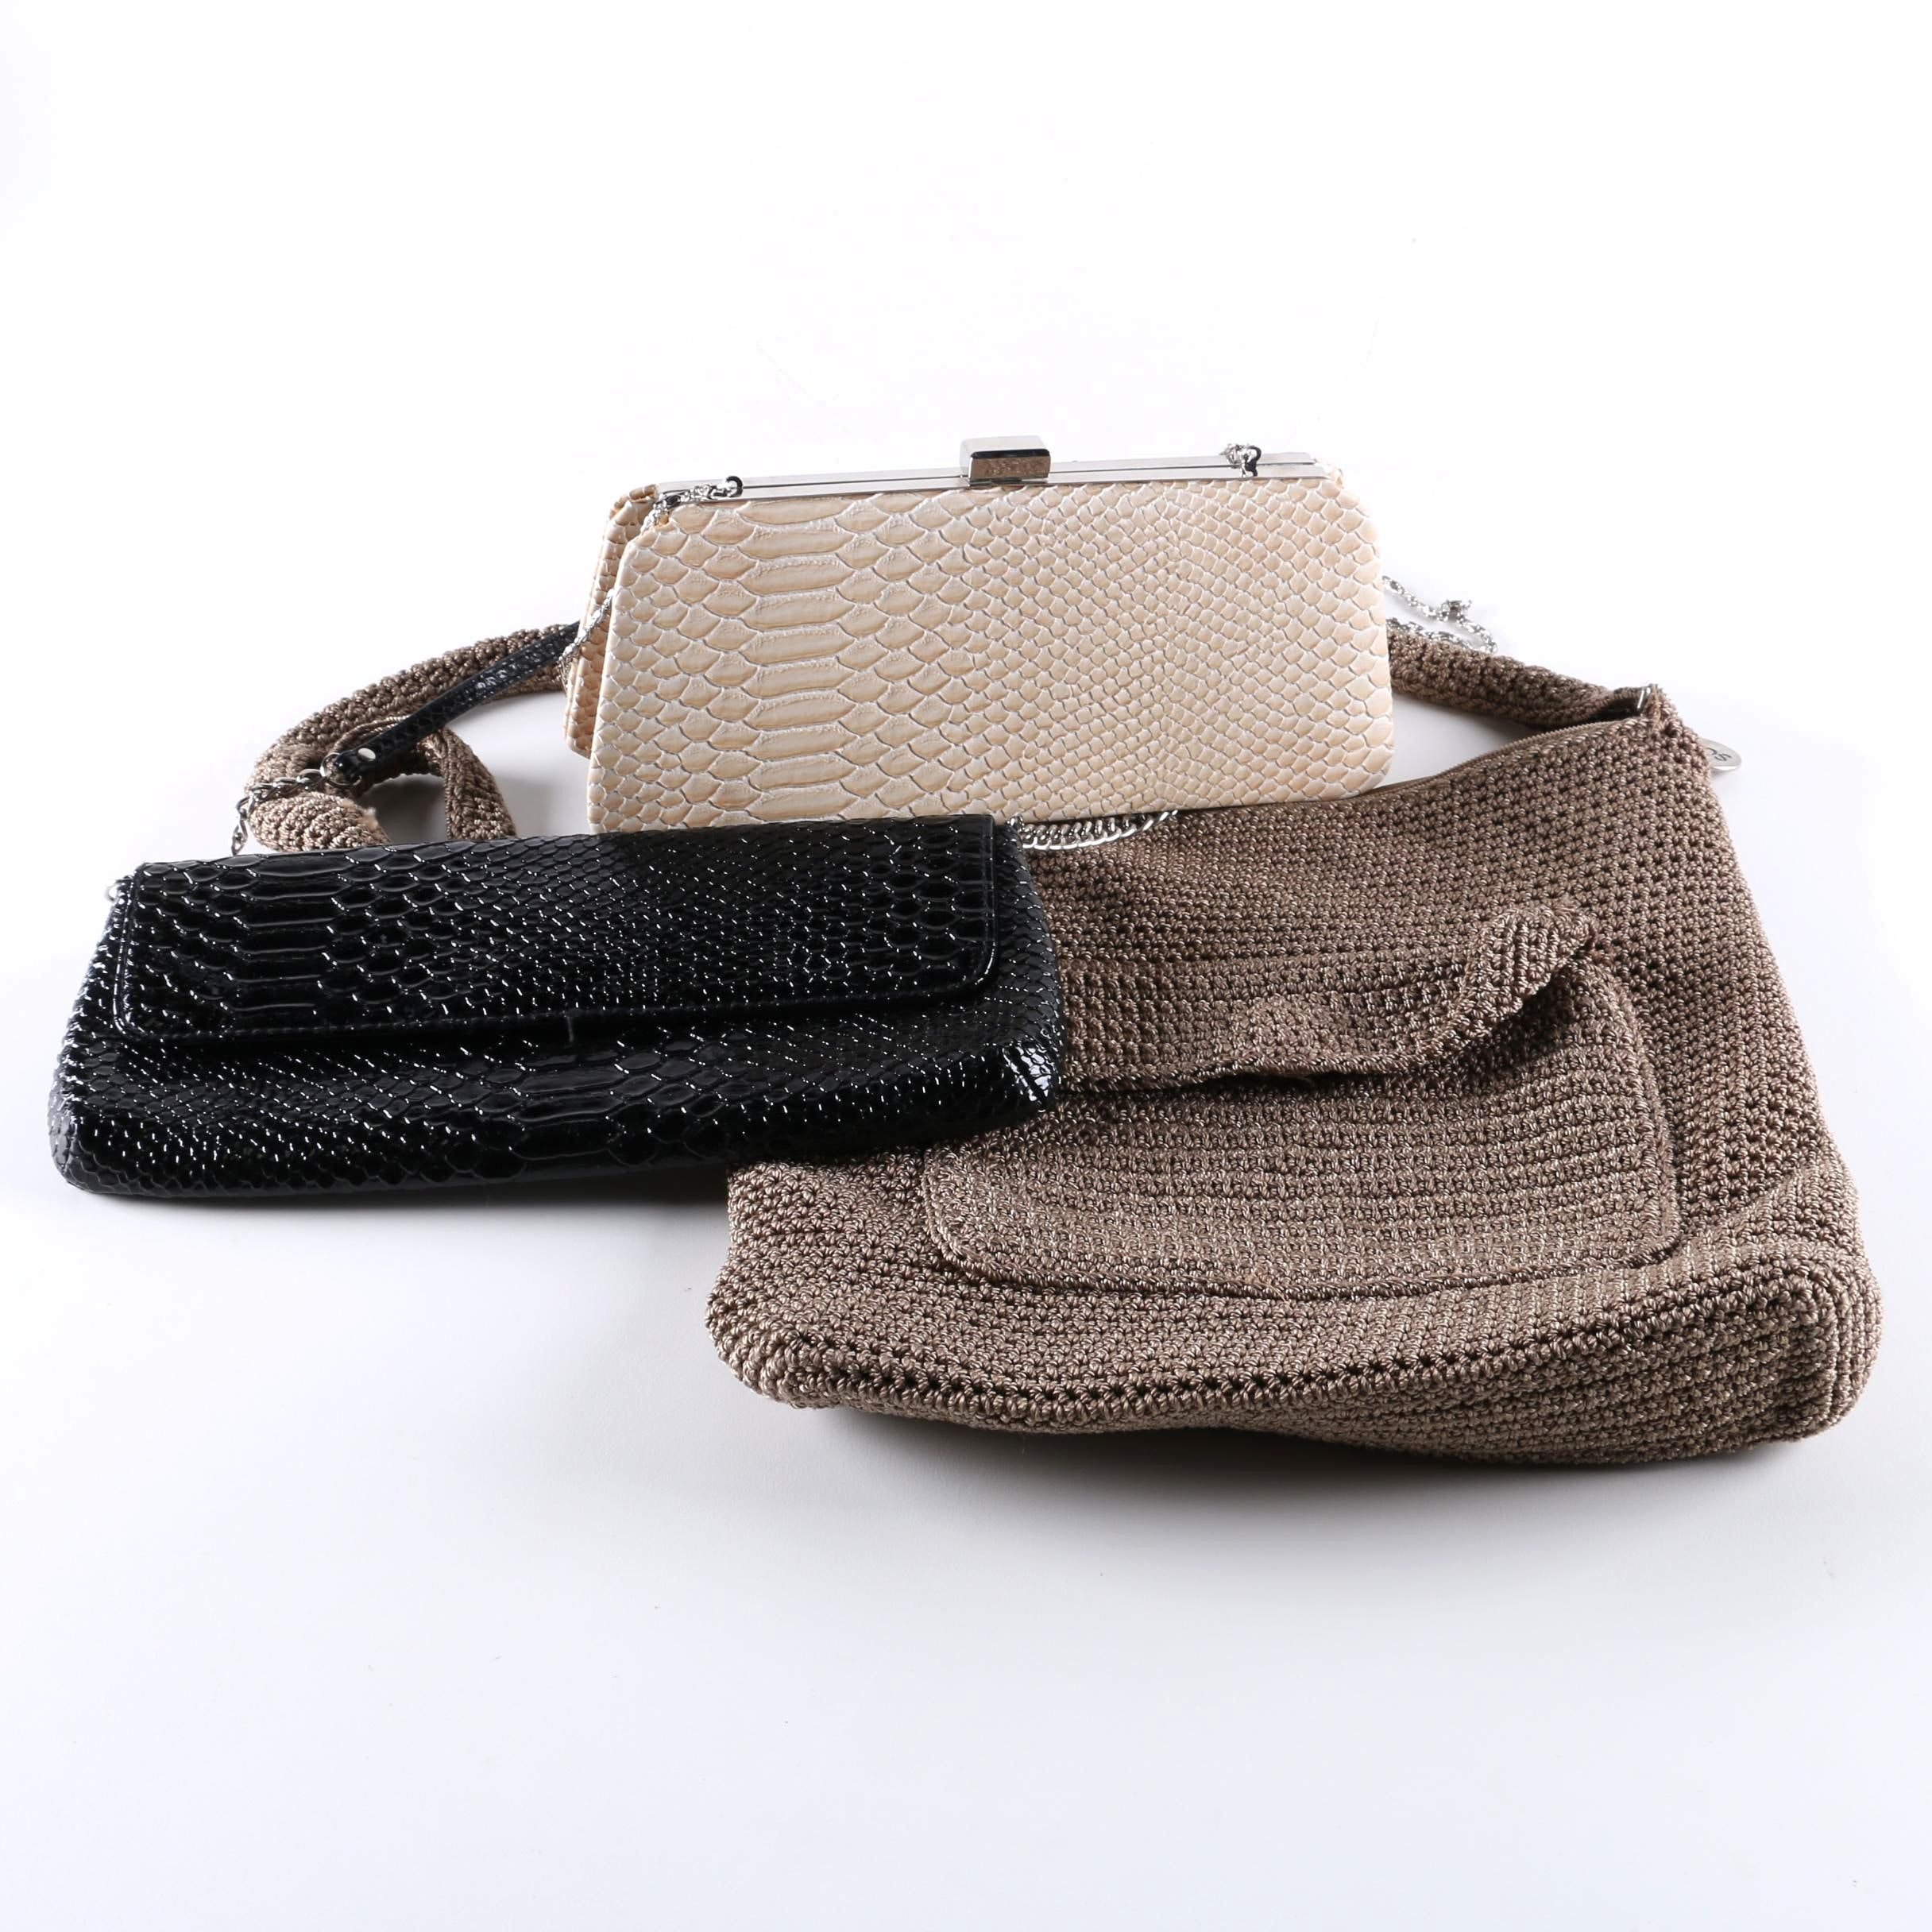 Woven and Embossed Handbags Including The Sak